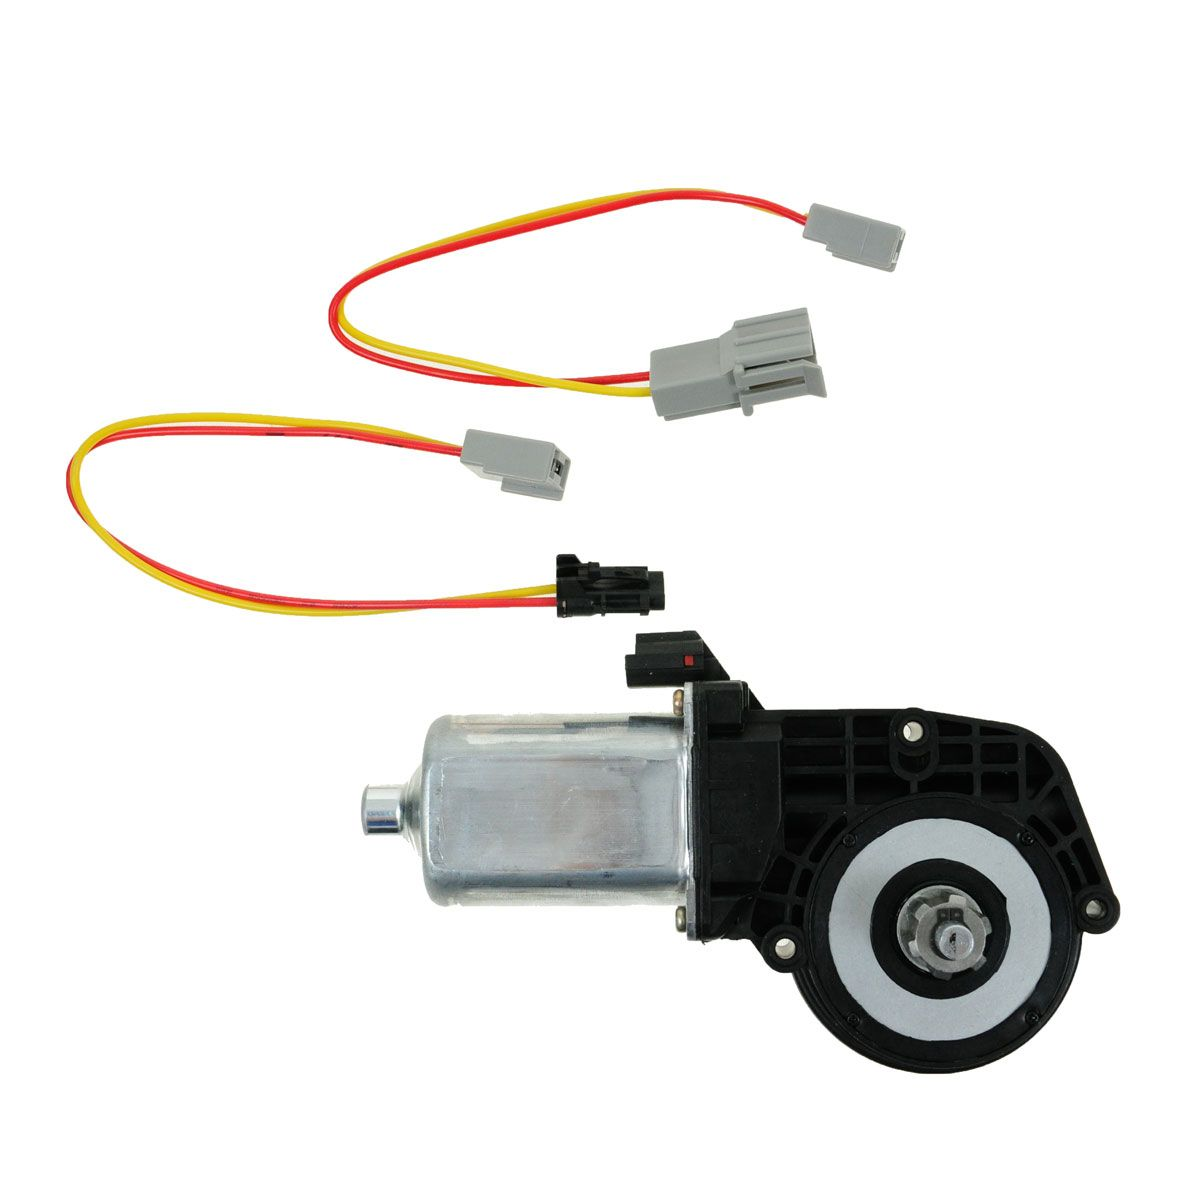 Power window lift motor for ford explorer e150 e250 e350 for 2002 ford explorer window motor replacement